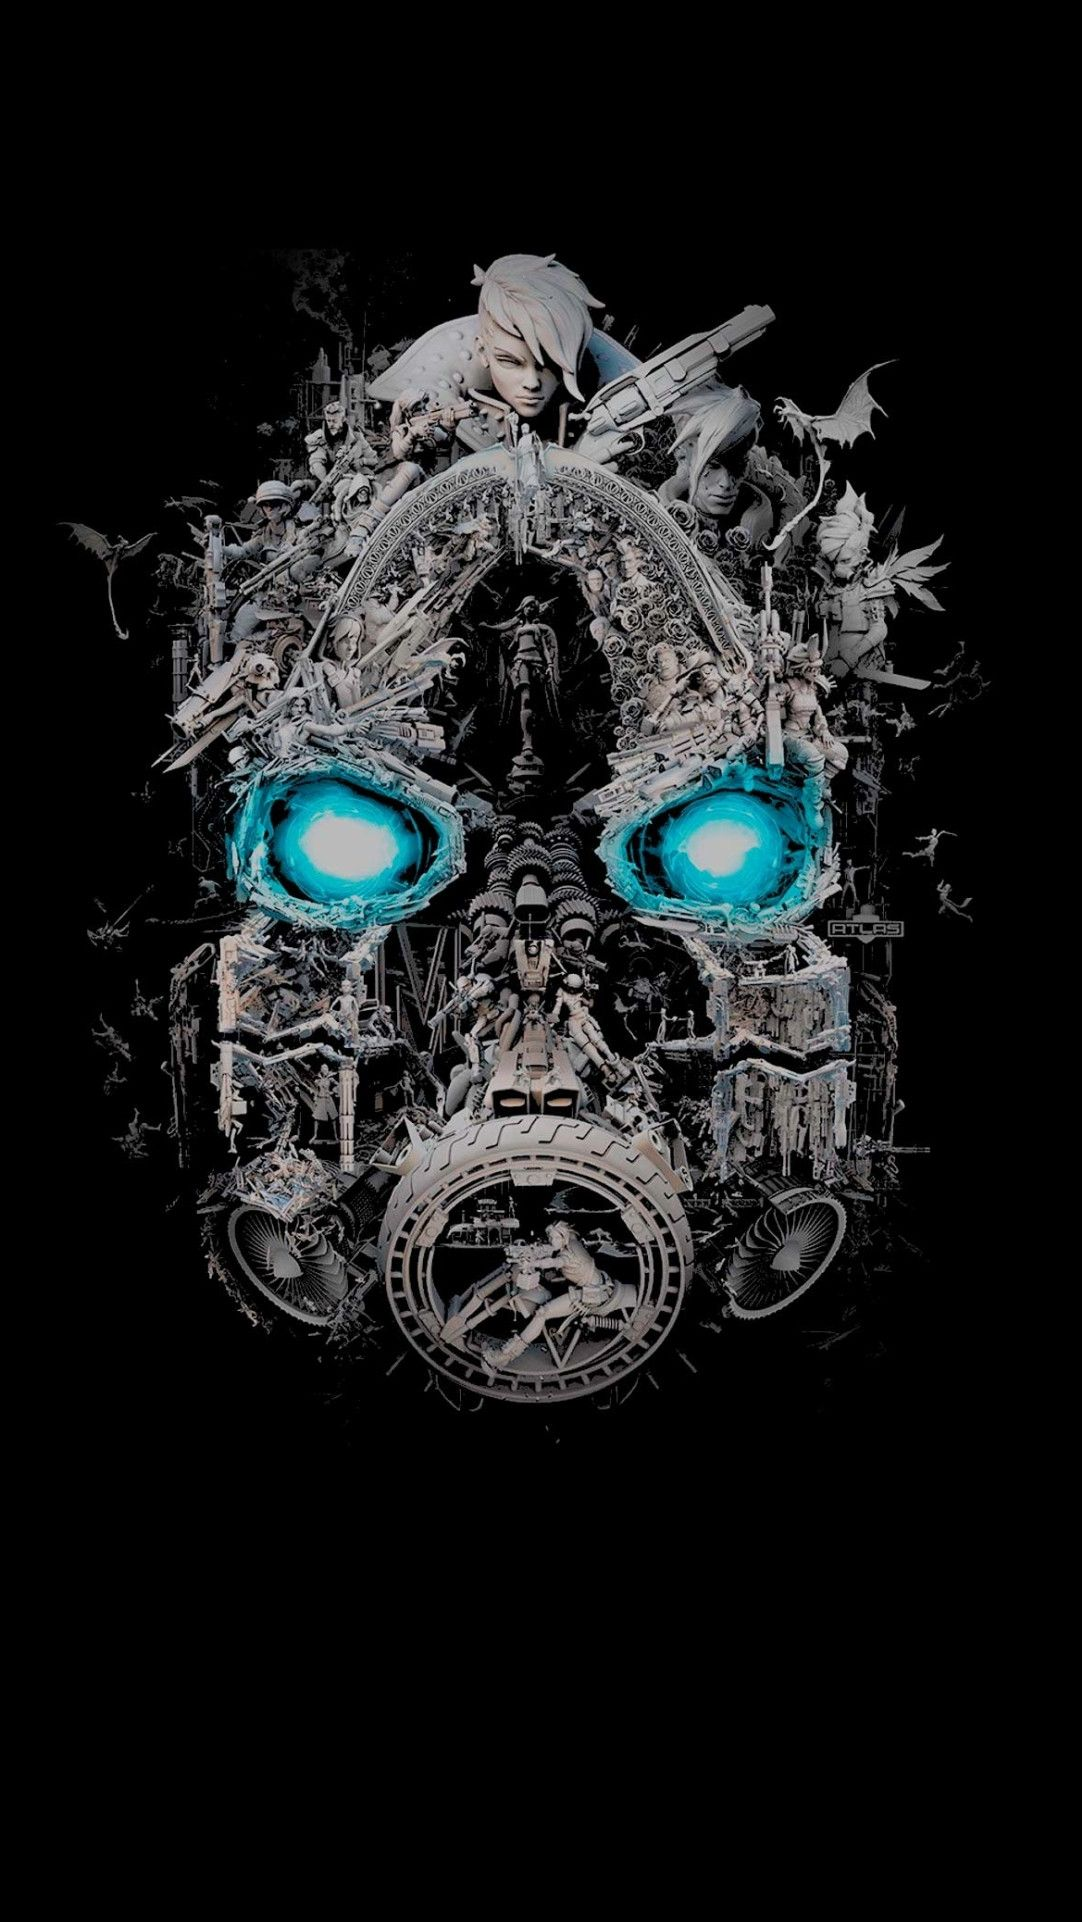 Borderlands Wallpaper Iphone Unique Borderlands 3 Mask Of